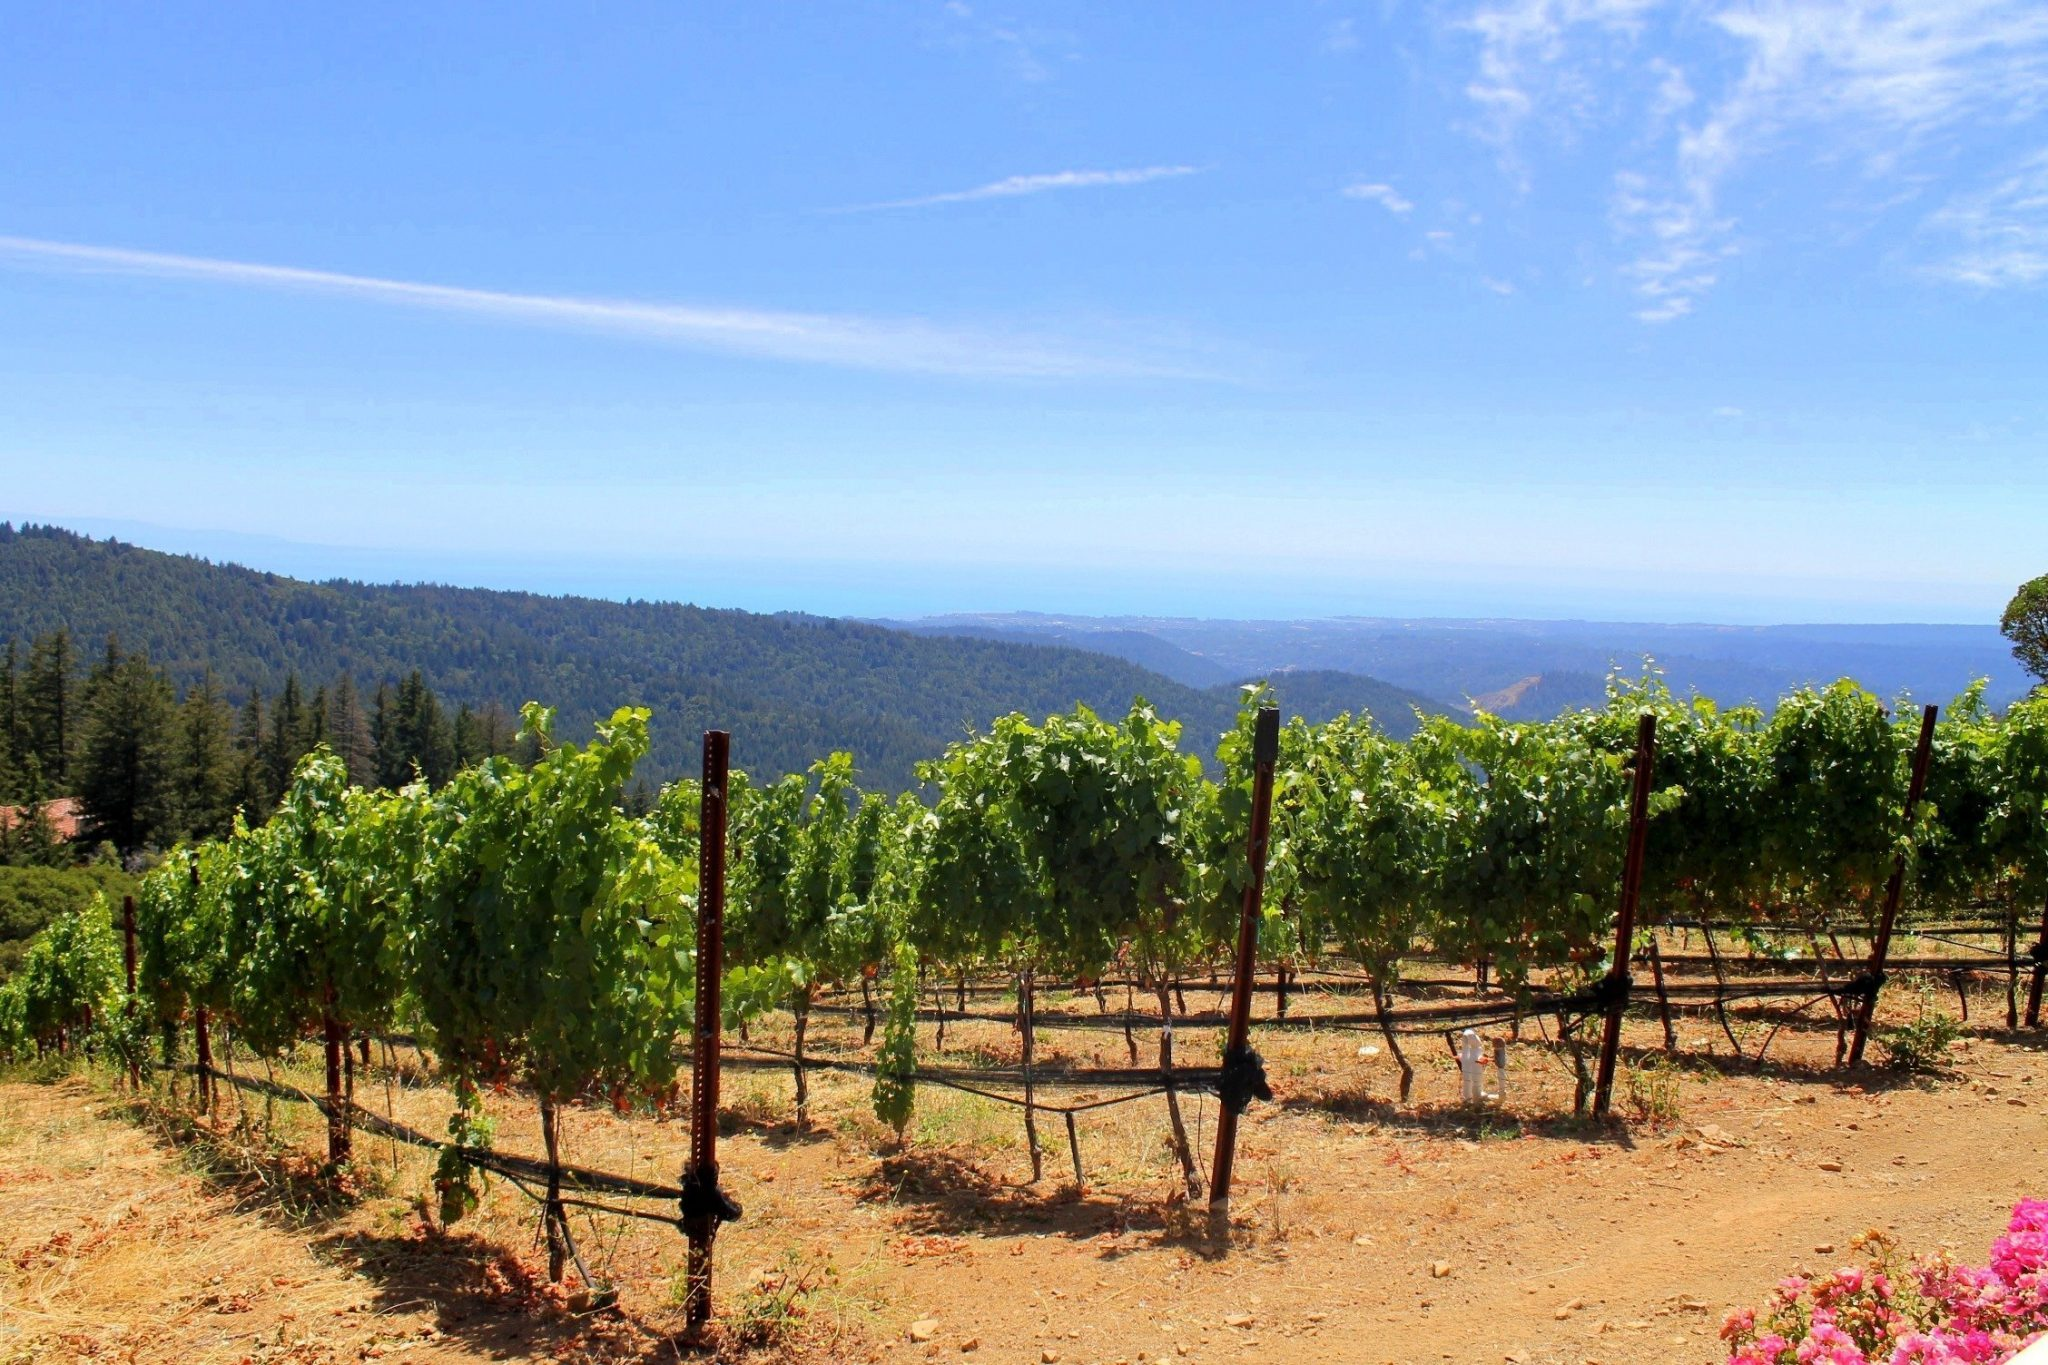 How to Spend a Day in San Jose, California | Things to do Near San Jose | South Bay Santa Cruz Mountain Wineries